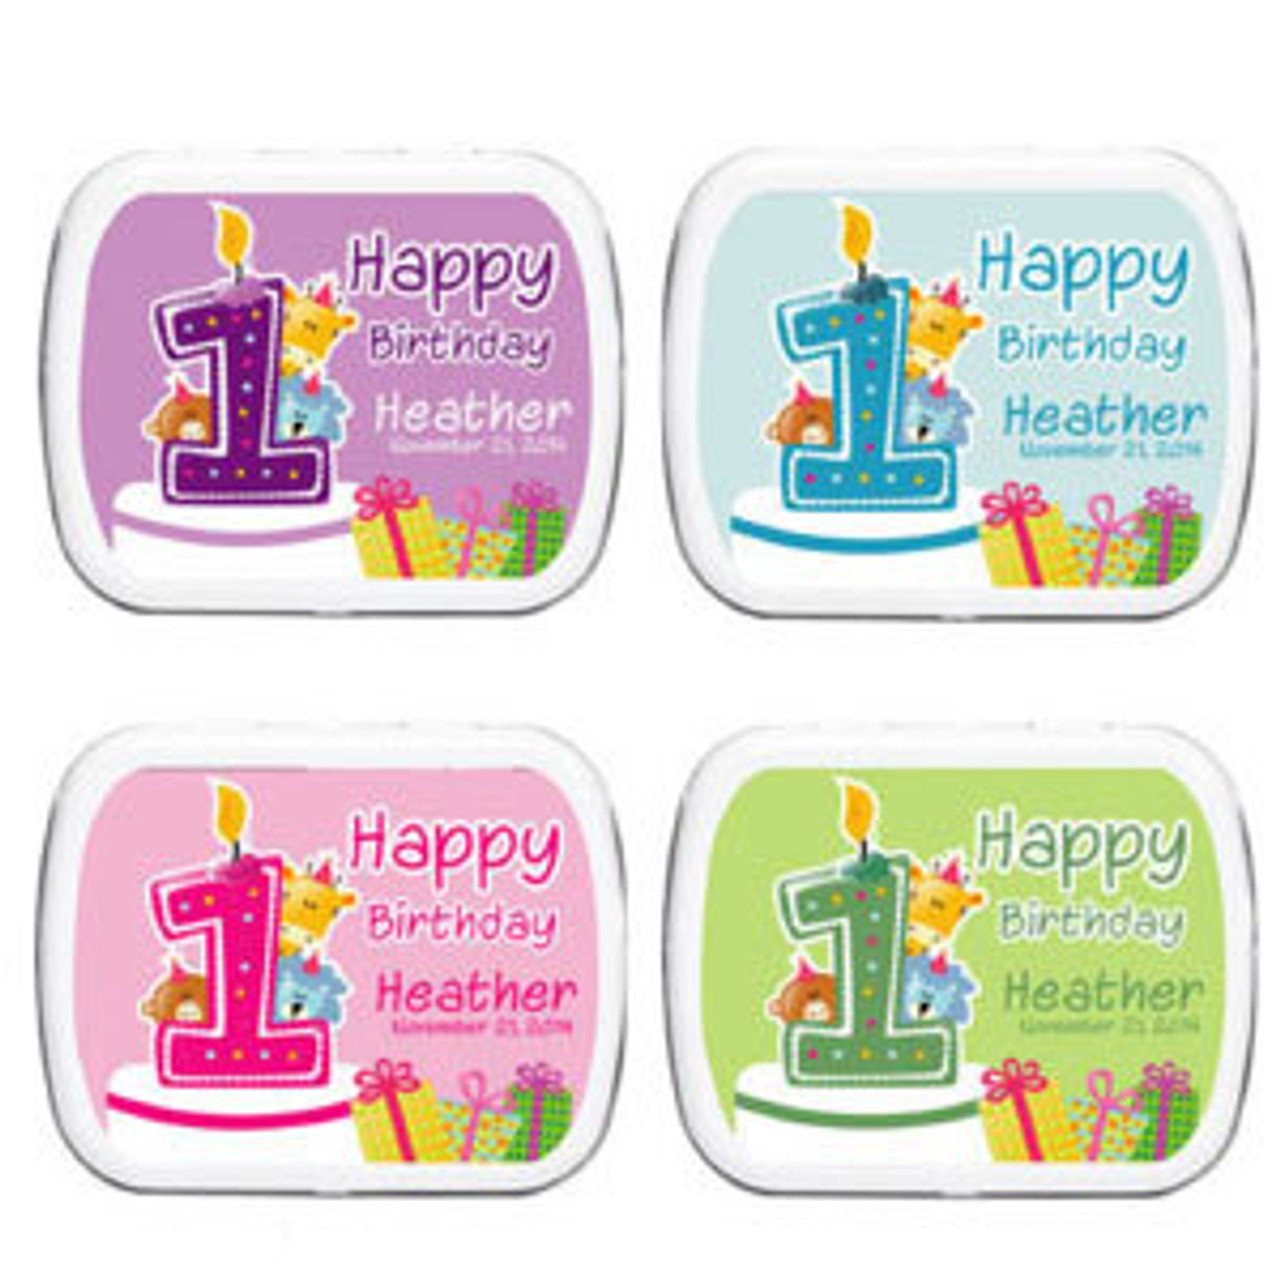 45 Personalized Frosted Glass Votive Candles Birthday Baby Party Wedding Favors